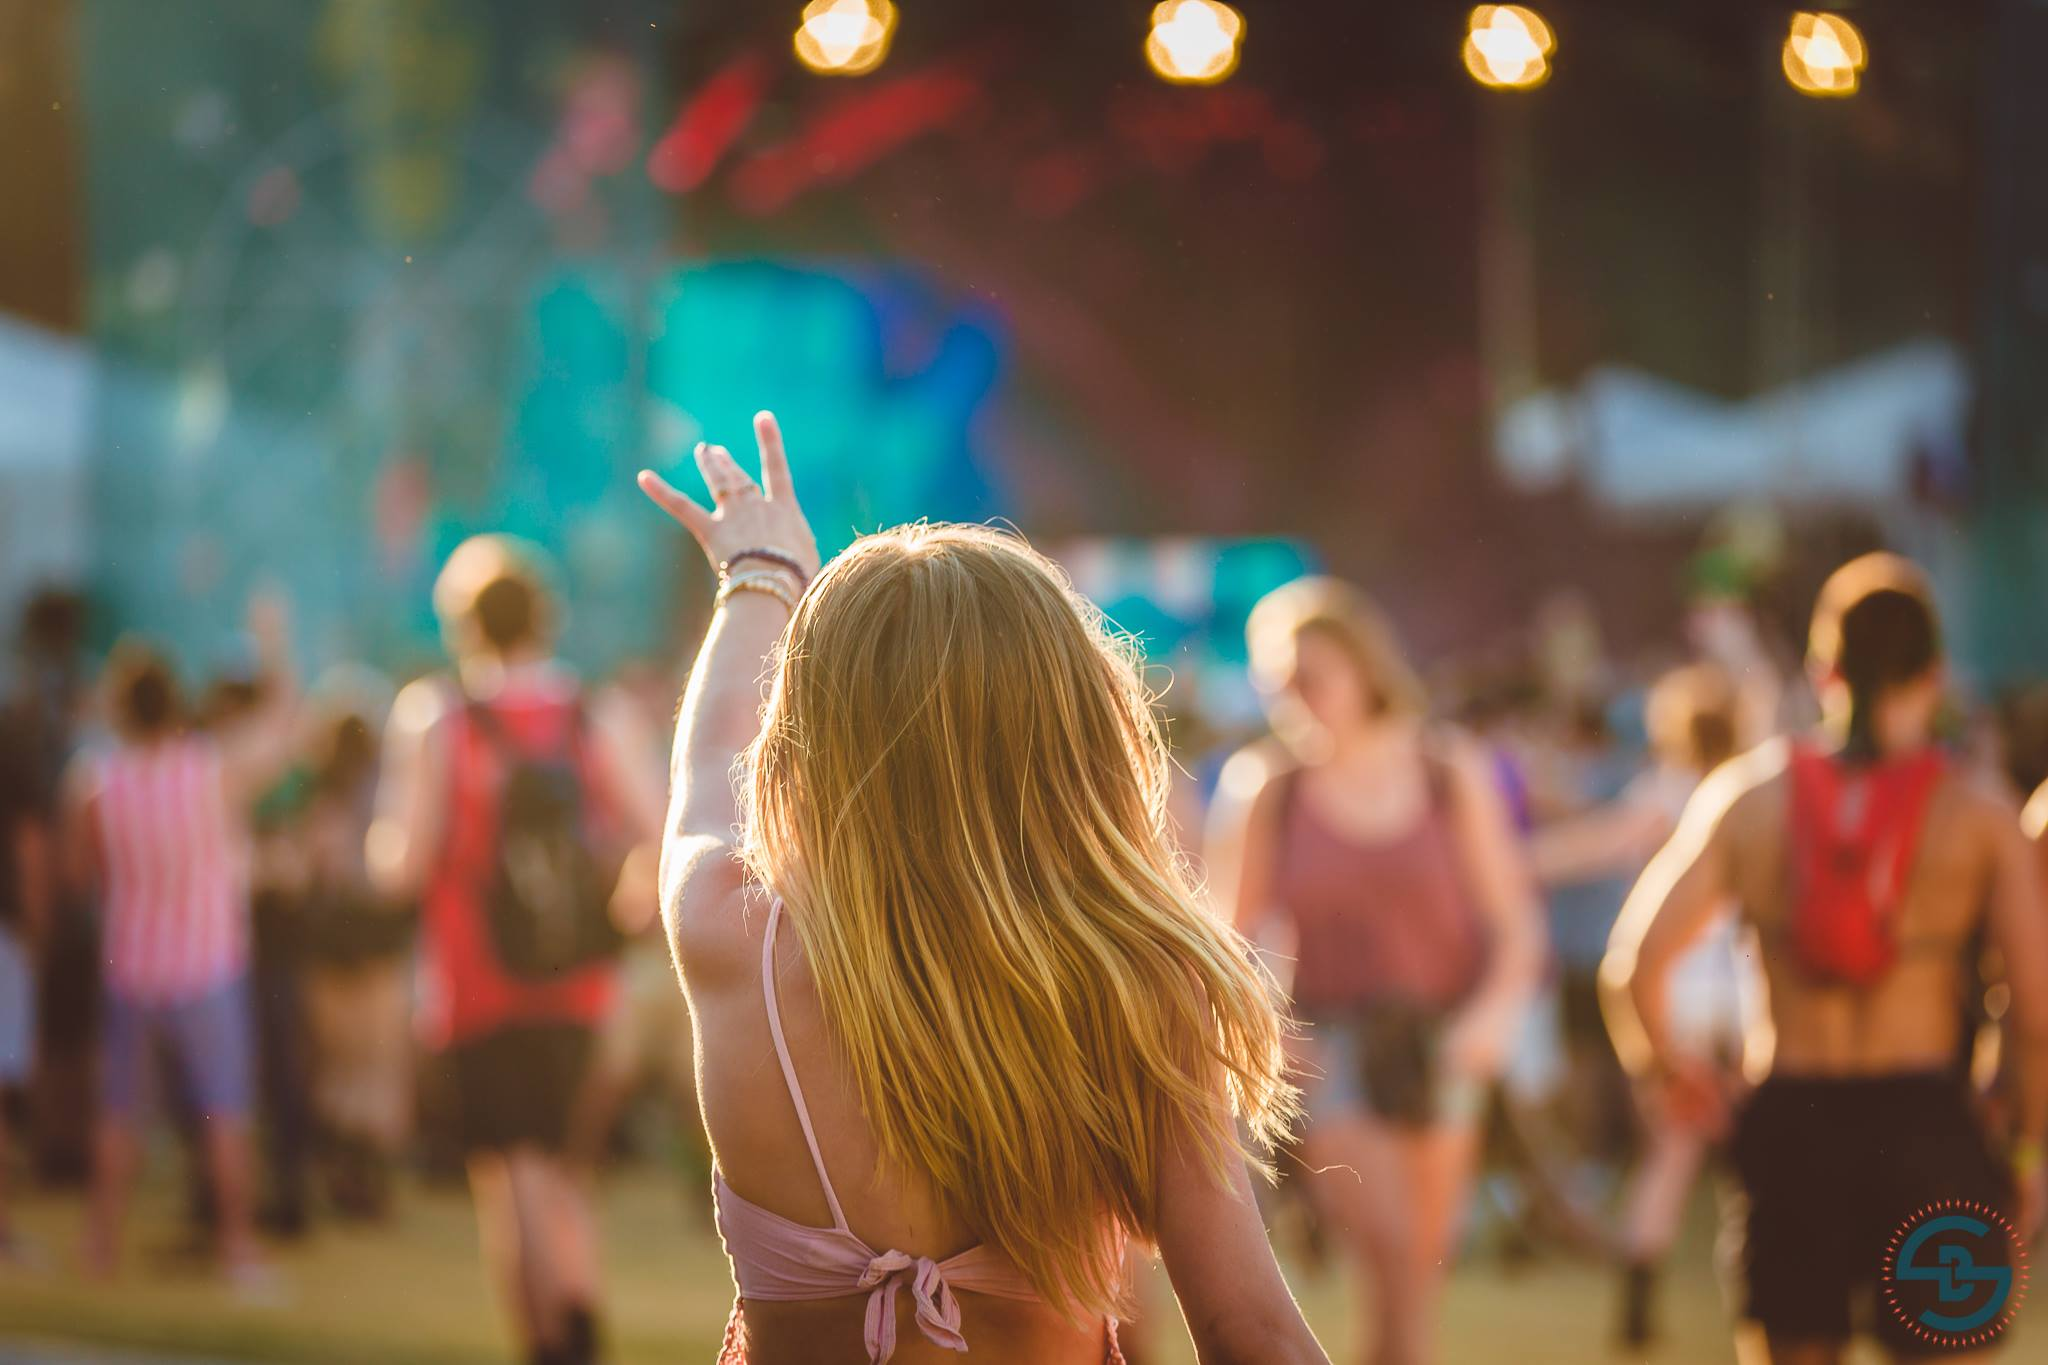 Lost & Found: My Story Of Venturing Alone At A Festival